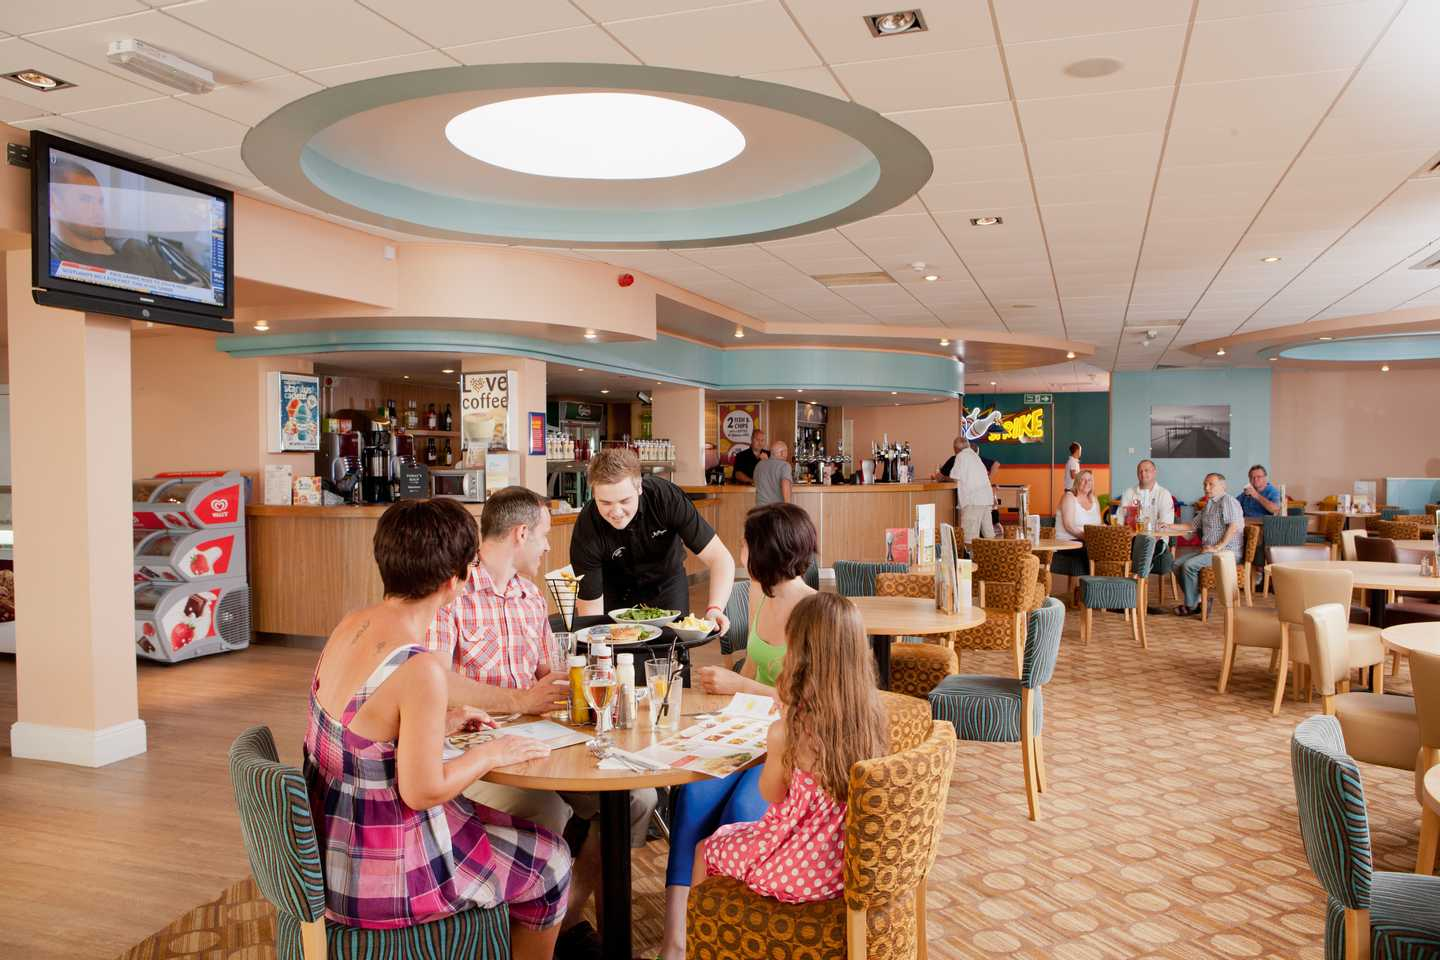 A family eating a meal in the Mash and Barrel restaurant